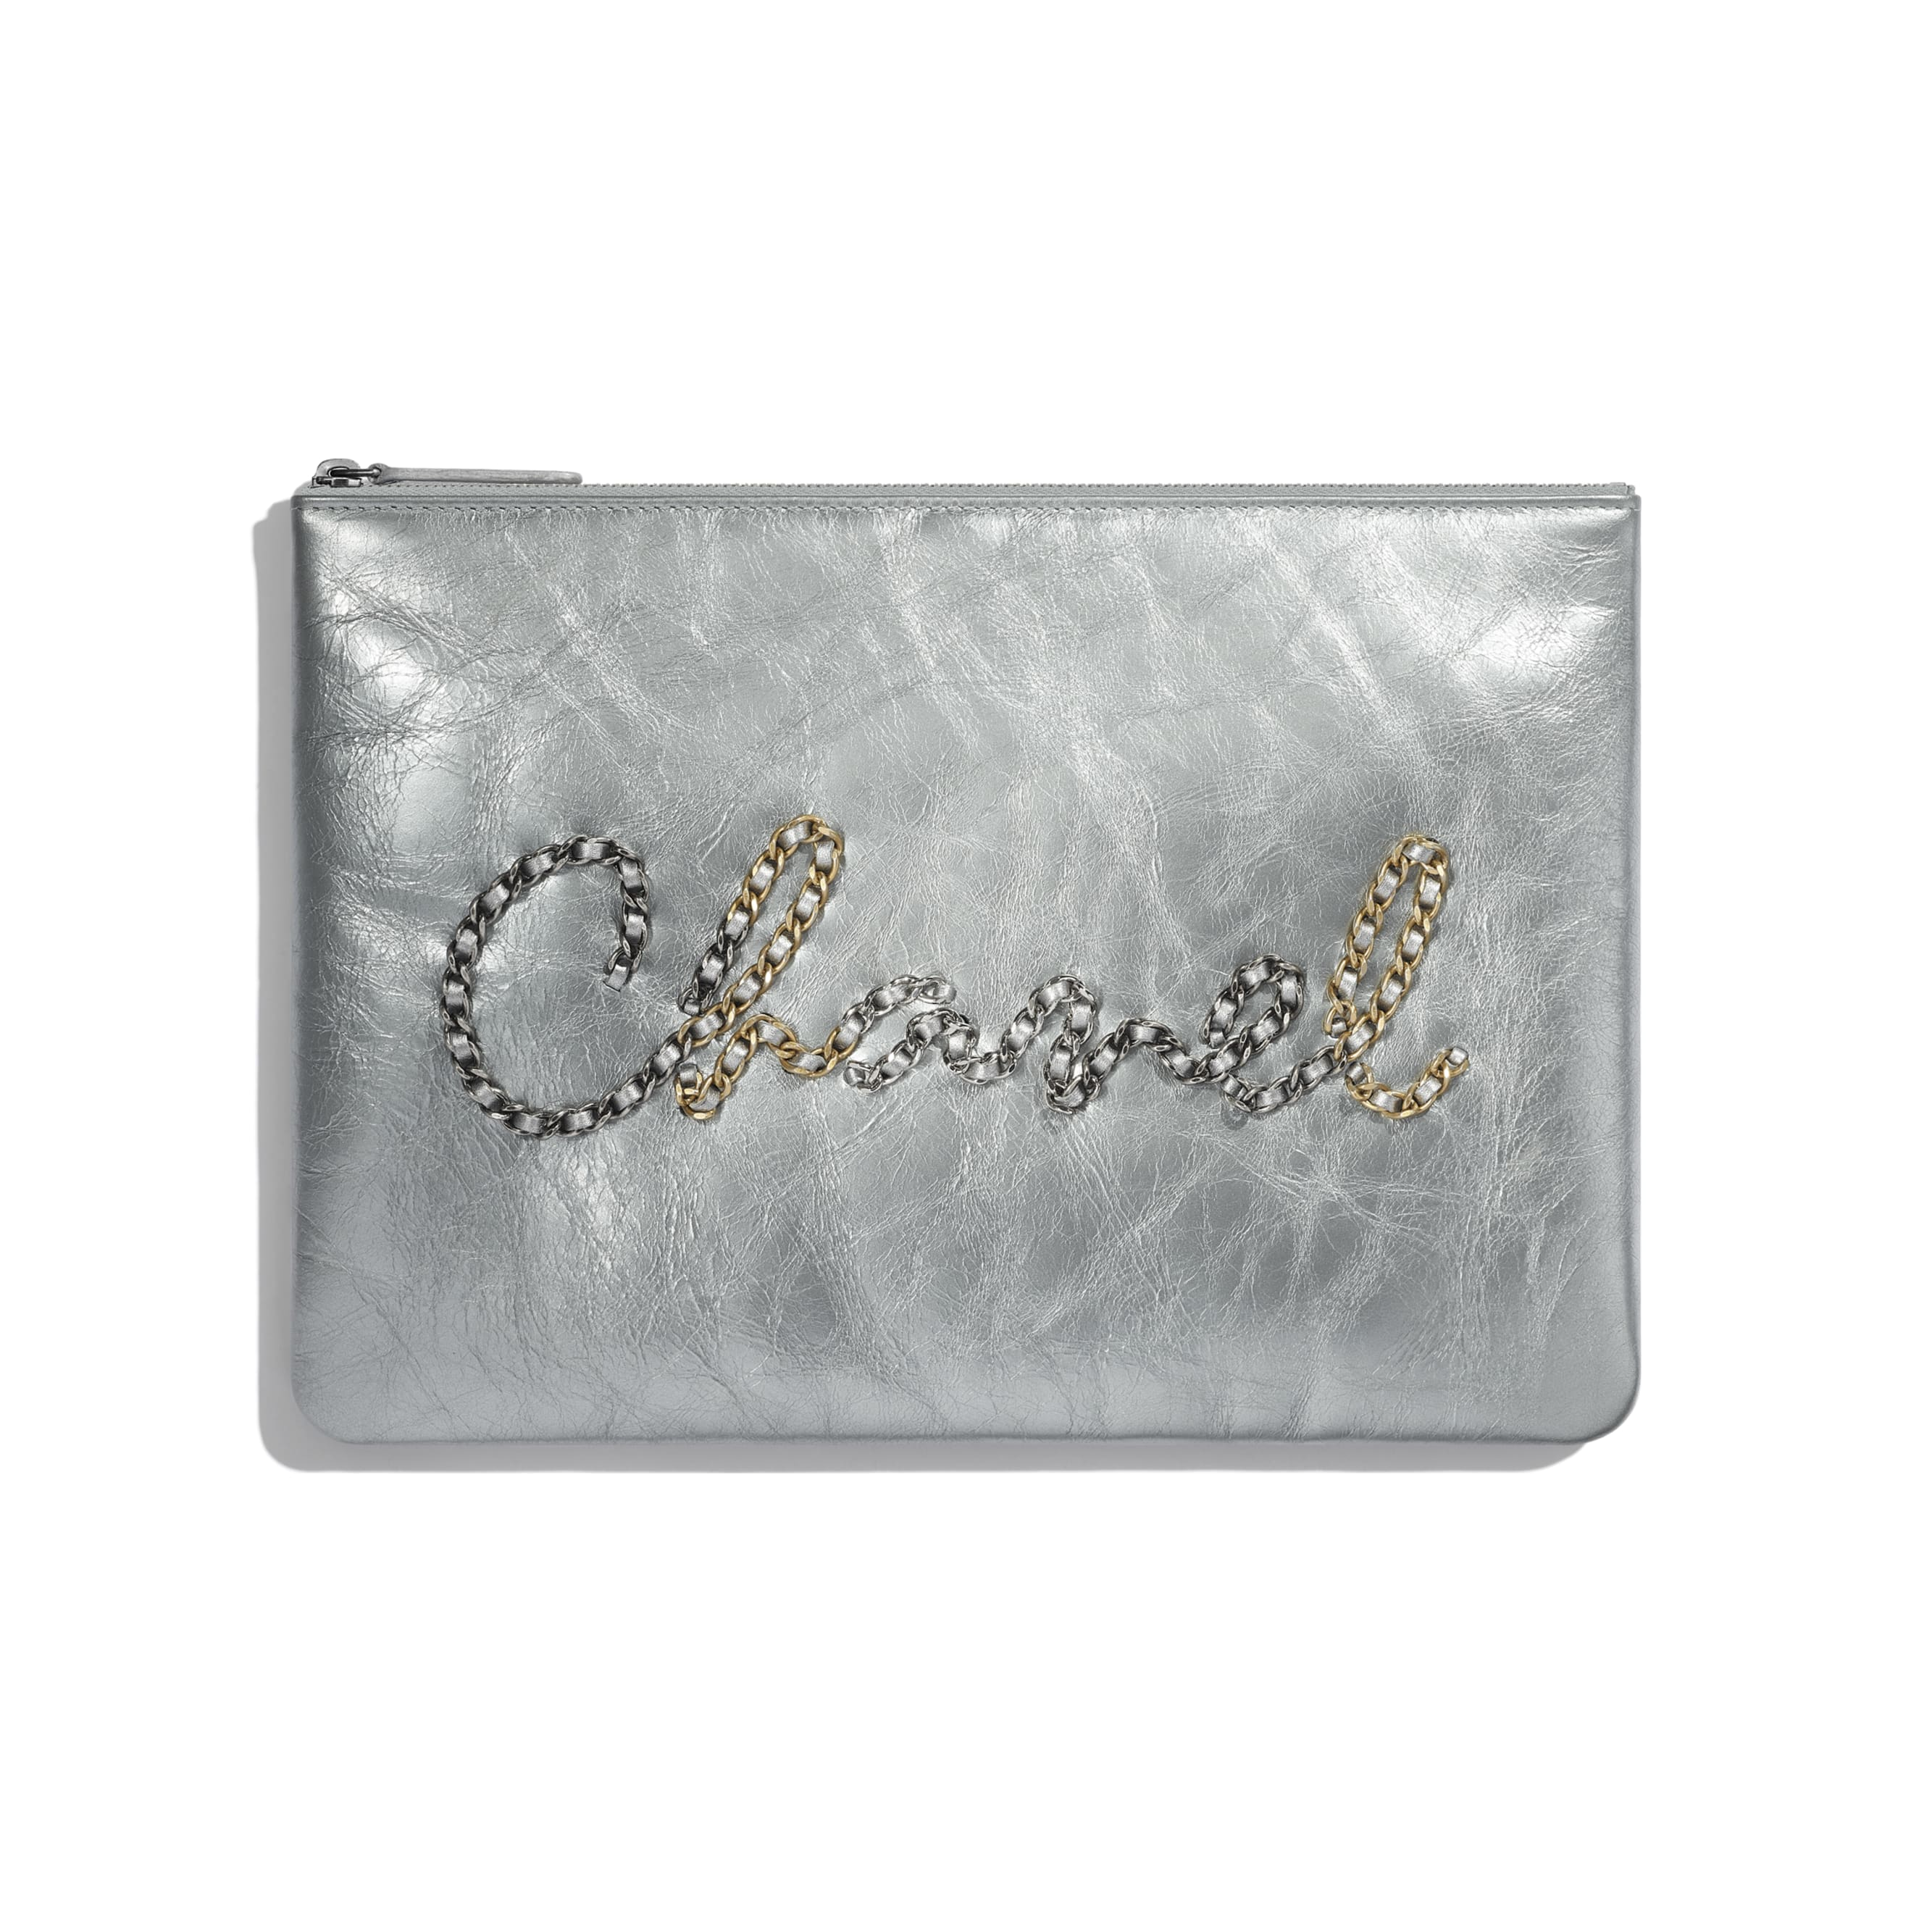 Pouch - Silver - Metallic Crumpled Calfskin, Gold-Tone, Silver-Tone & Ruthenium-Finish Metal - CHANEL - Default view - see standard sized version